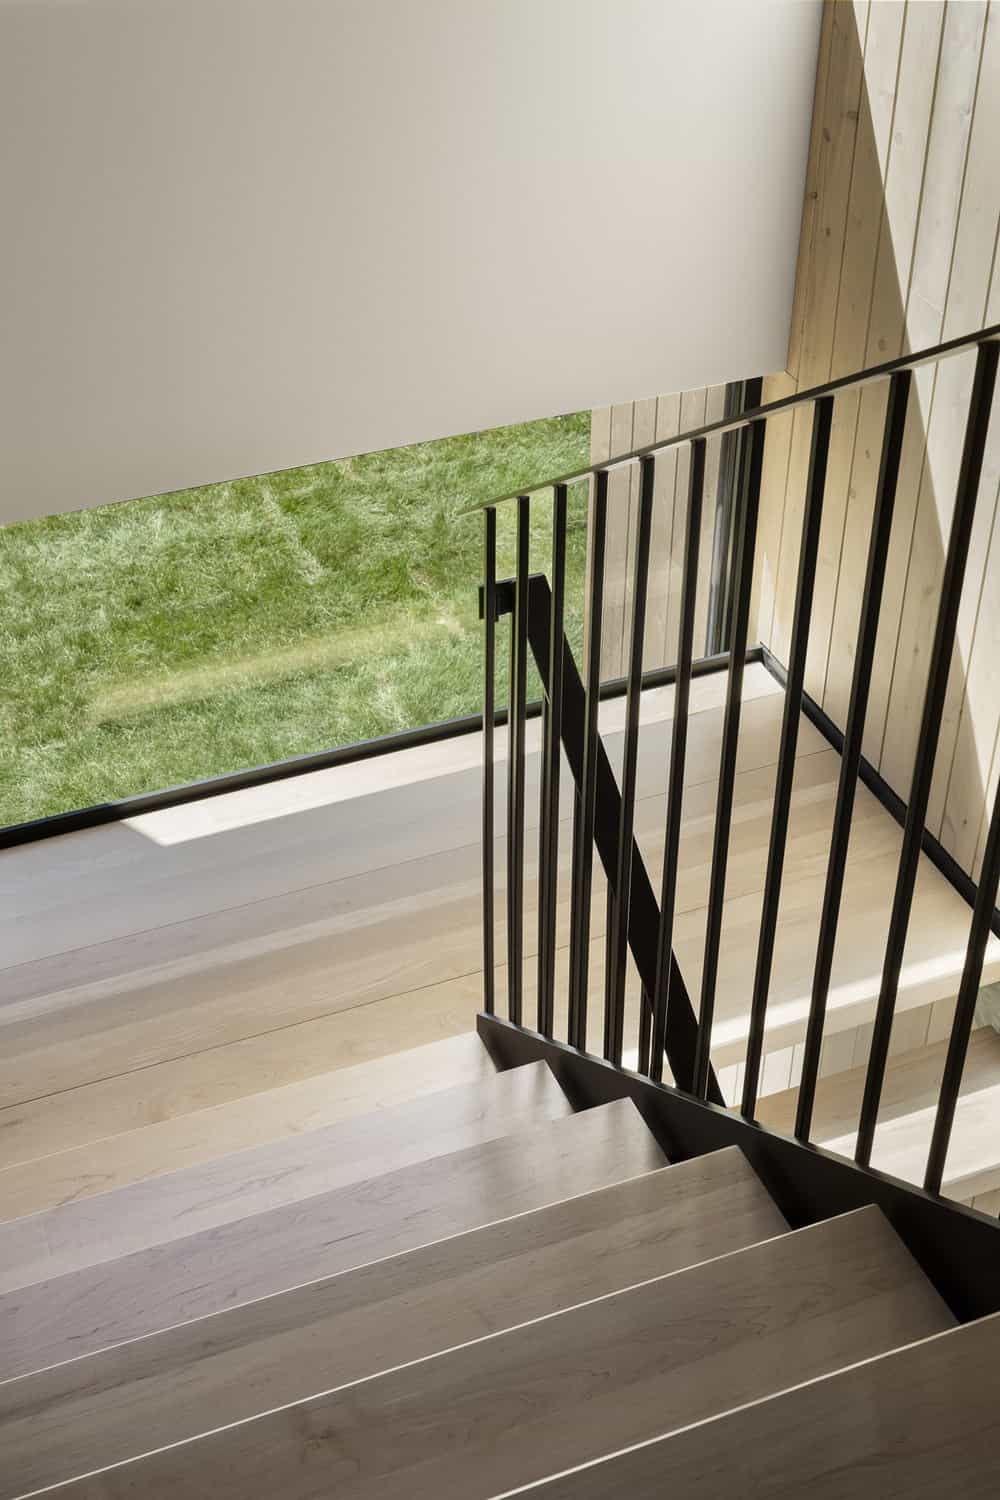 This is an angled look at the staircase showcasing more of its light wooden steps and contrasting black wrought iron railings.